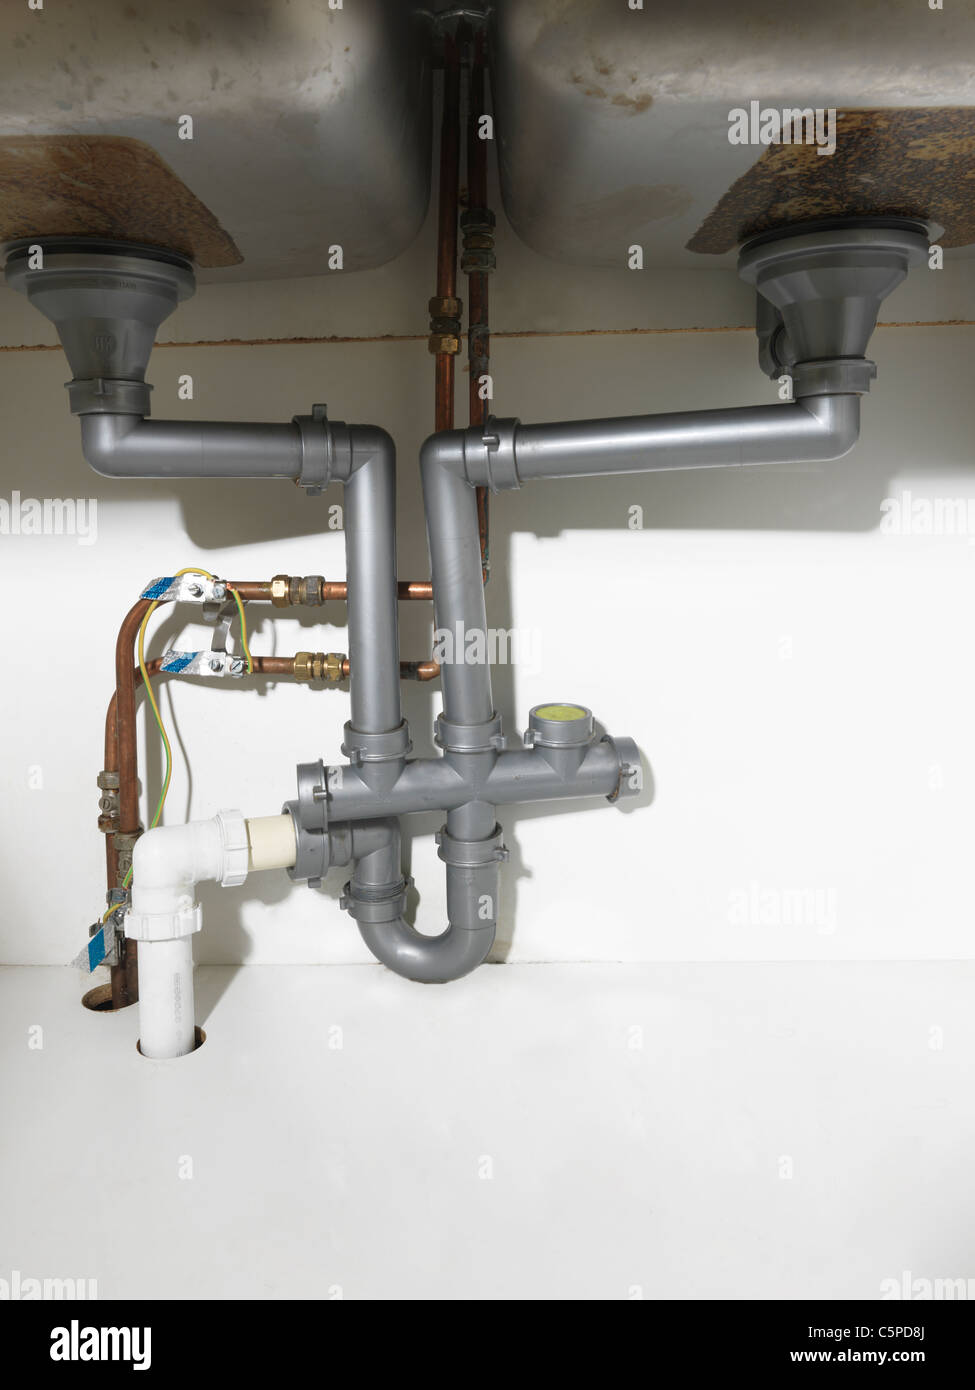 stock photo waste pipe and fittings under a double kitchen sink and earth bonding wires with copper pipes - Kitchen Sink Wastes